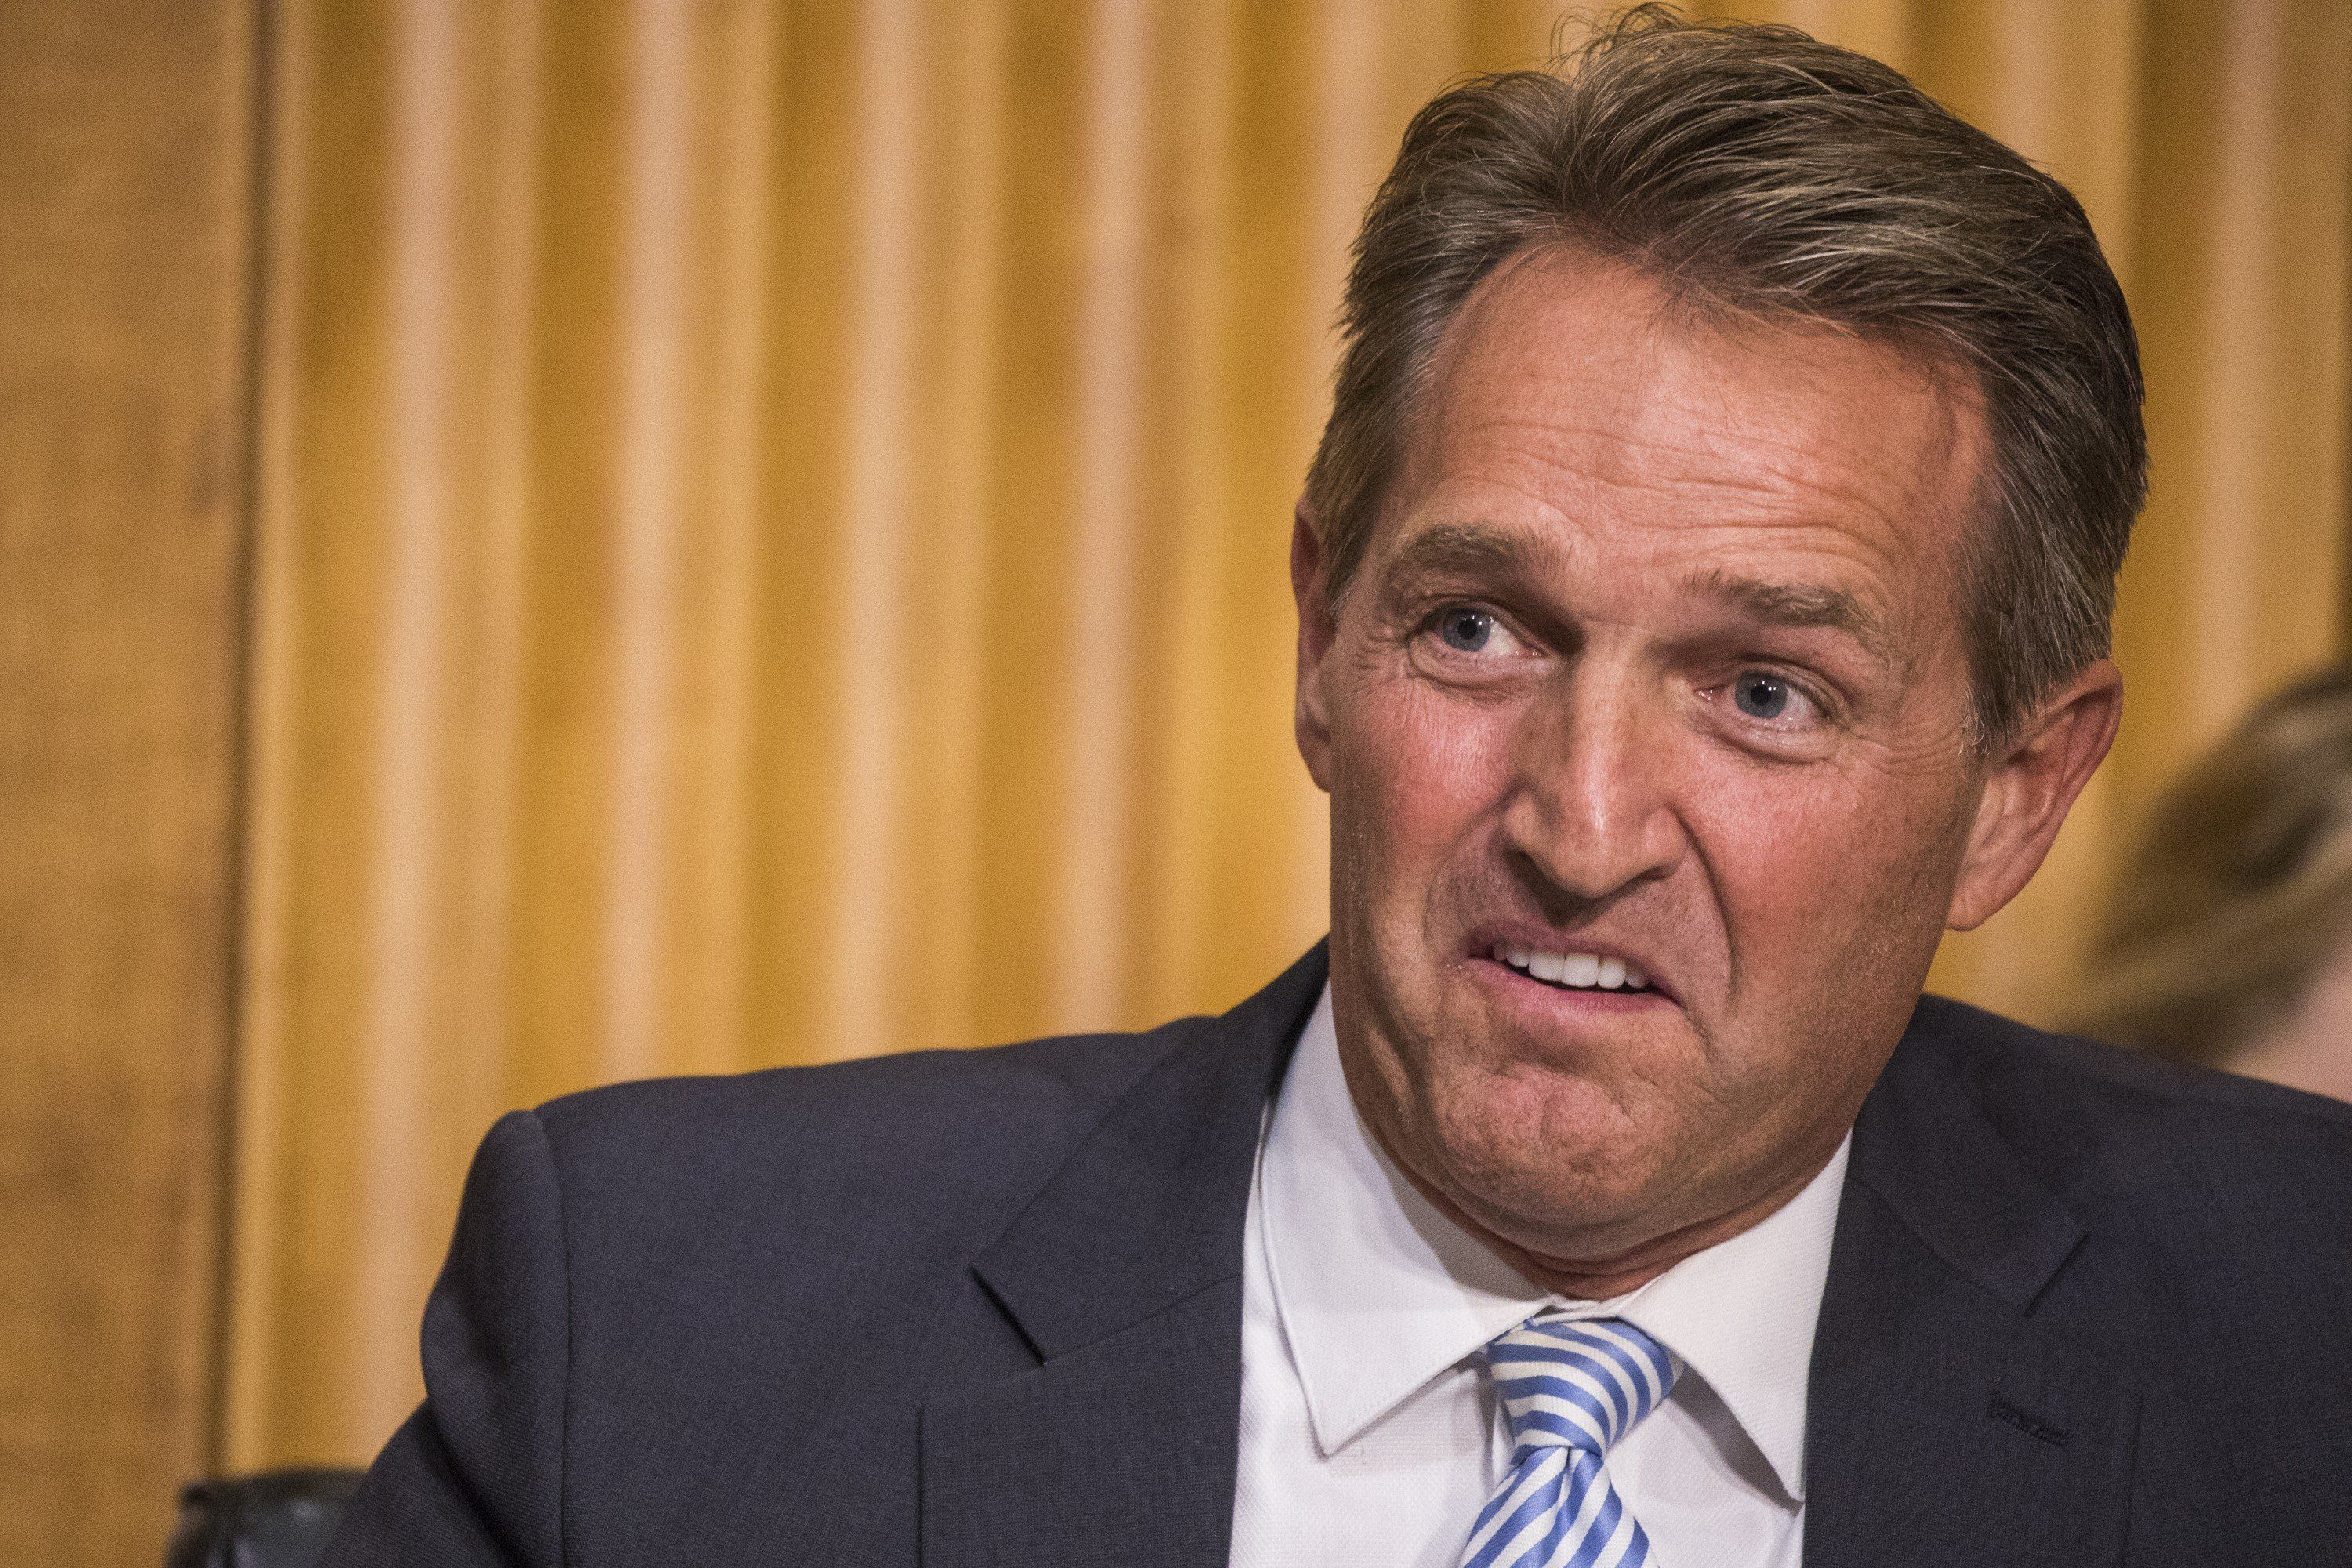 Sen.Jeff Flake (R-Ariz.) would like to end federal spending on researchinto using crickets, mealworms and other i